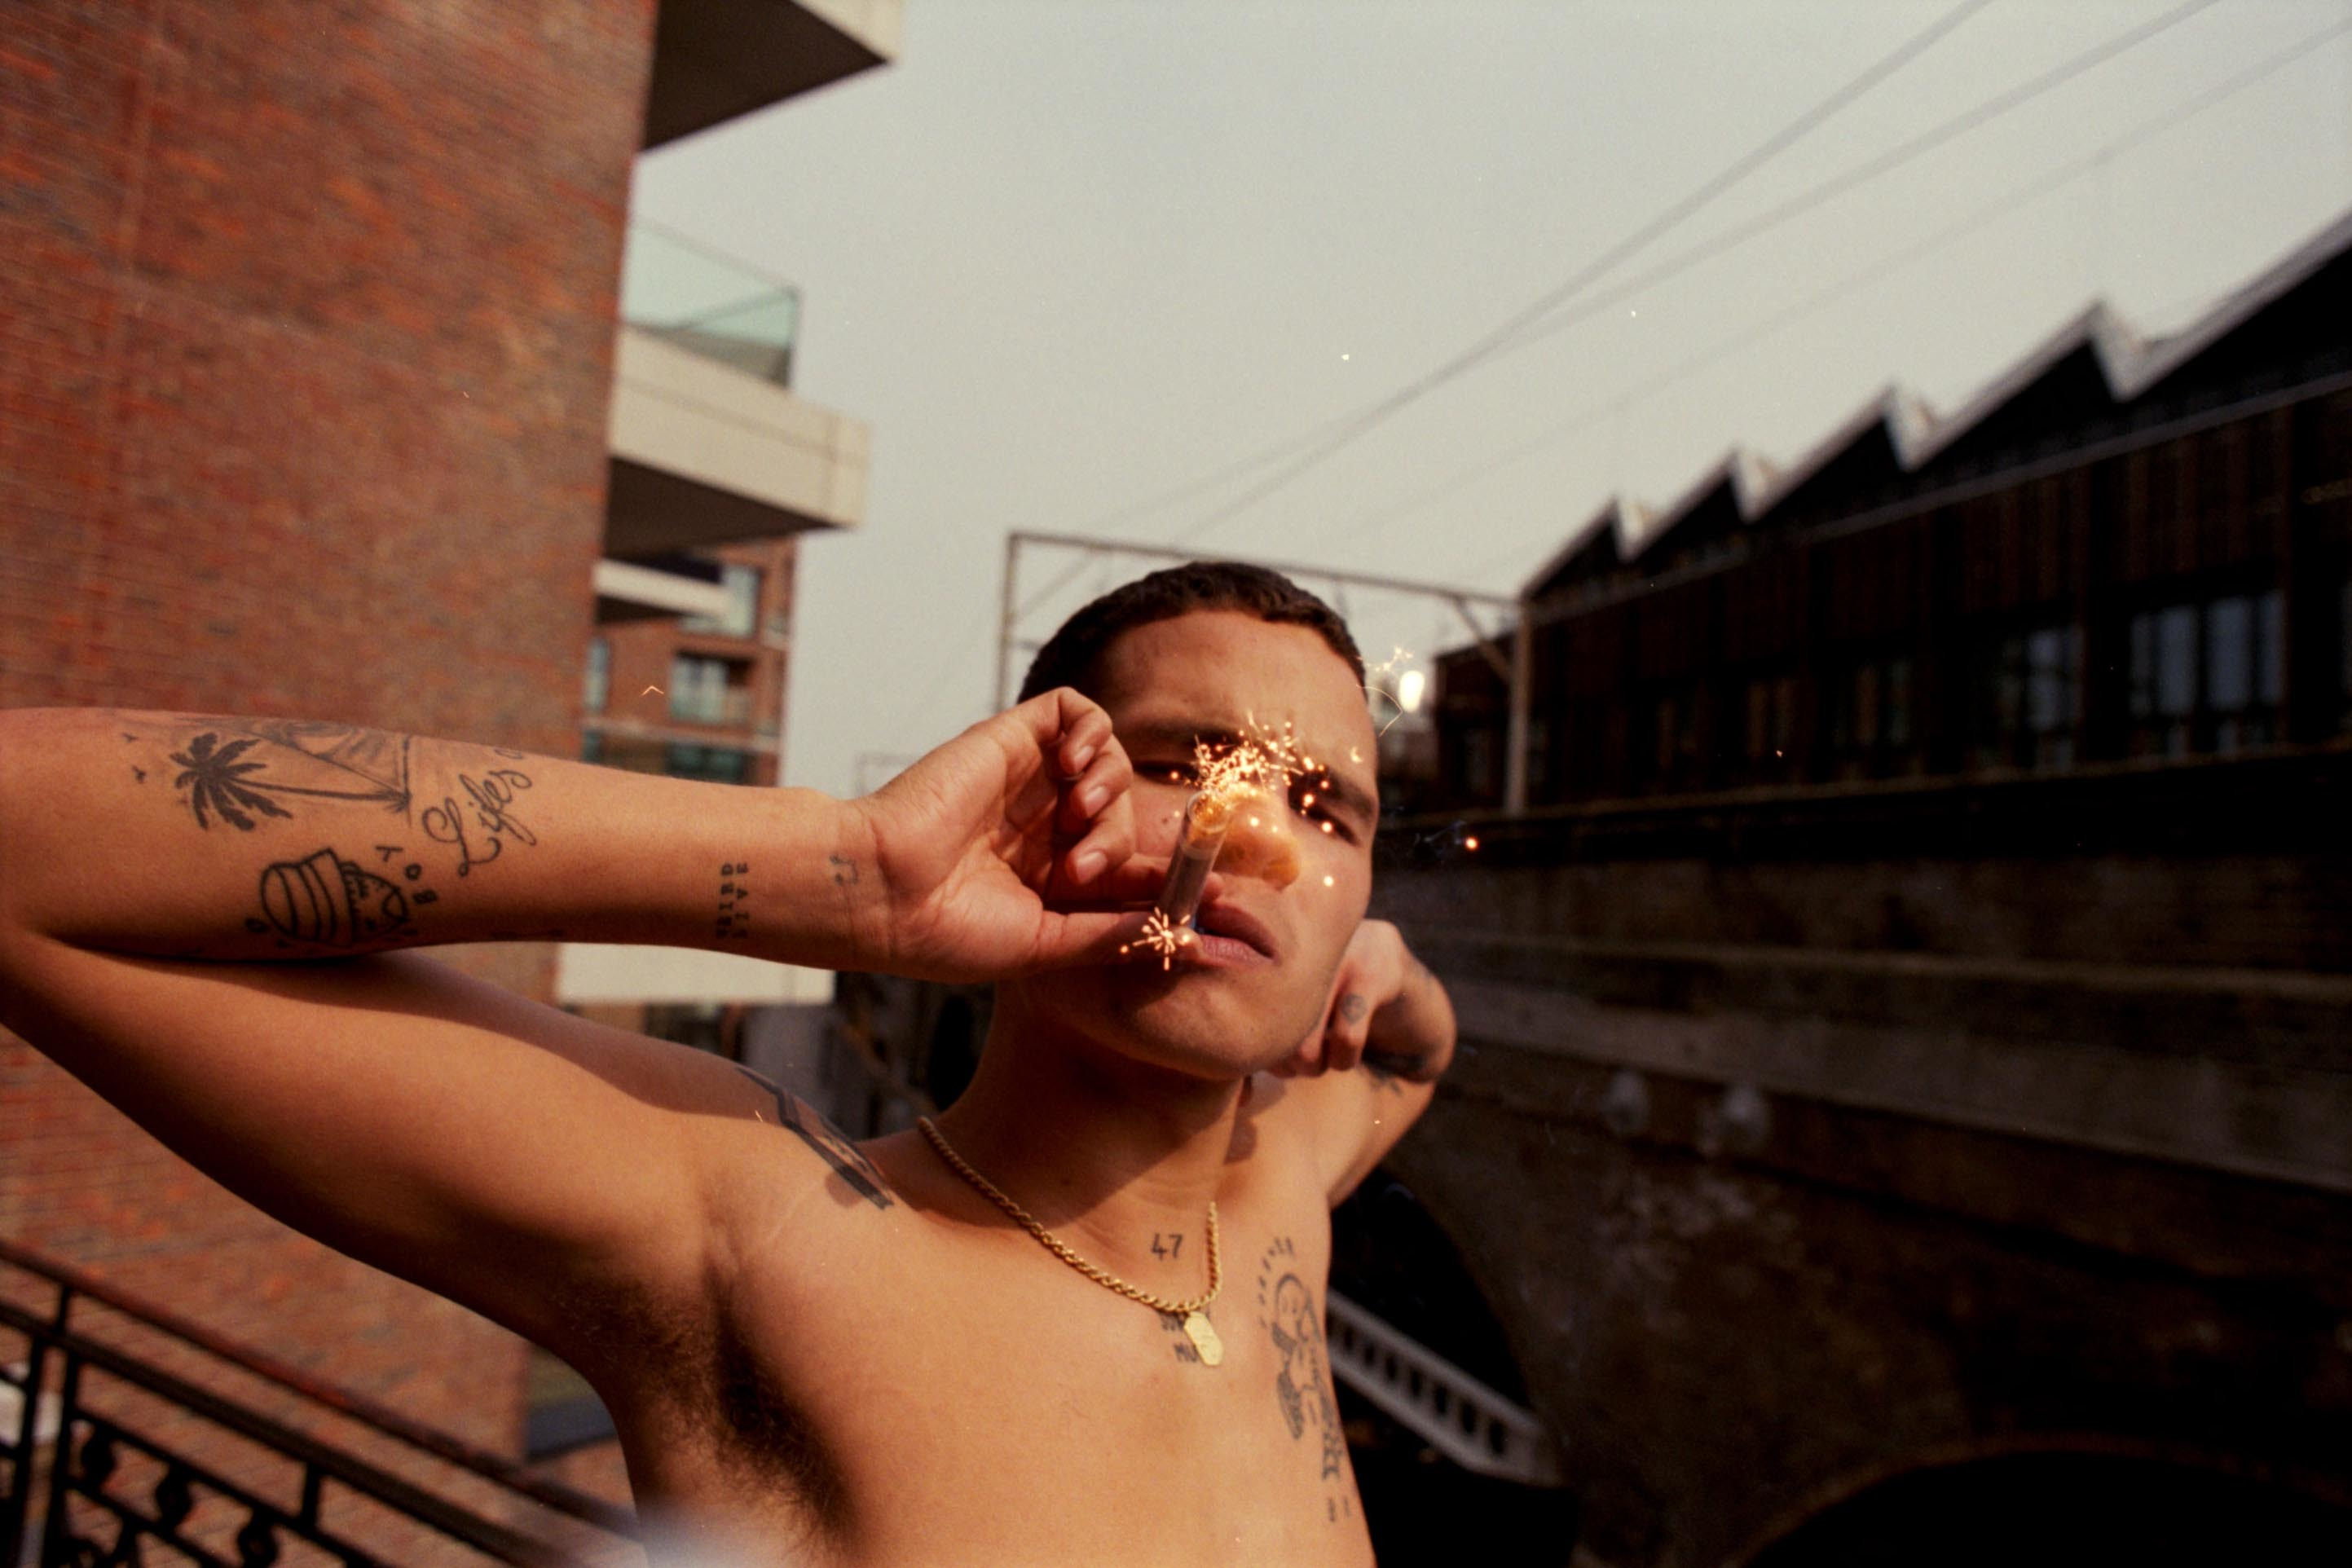 Tracks: slowthai, Mark Ronson, Biffy Clyro and more